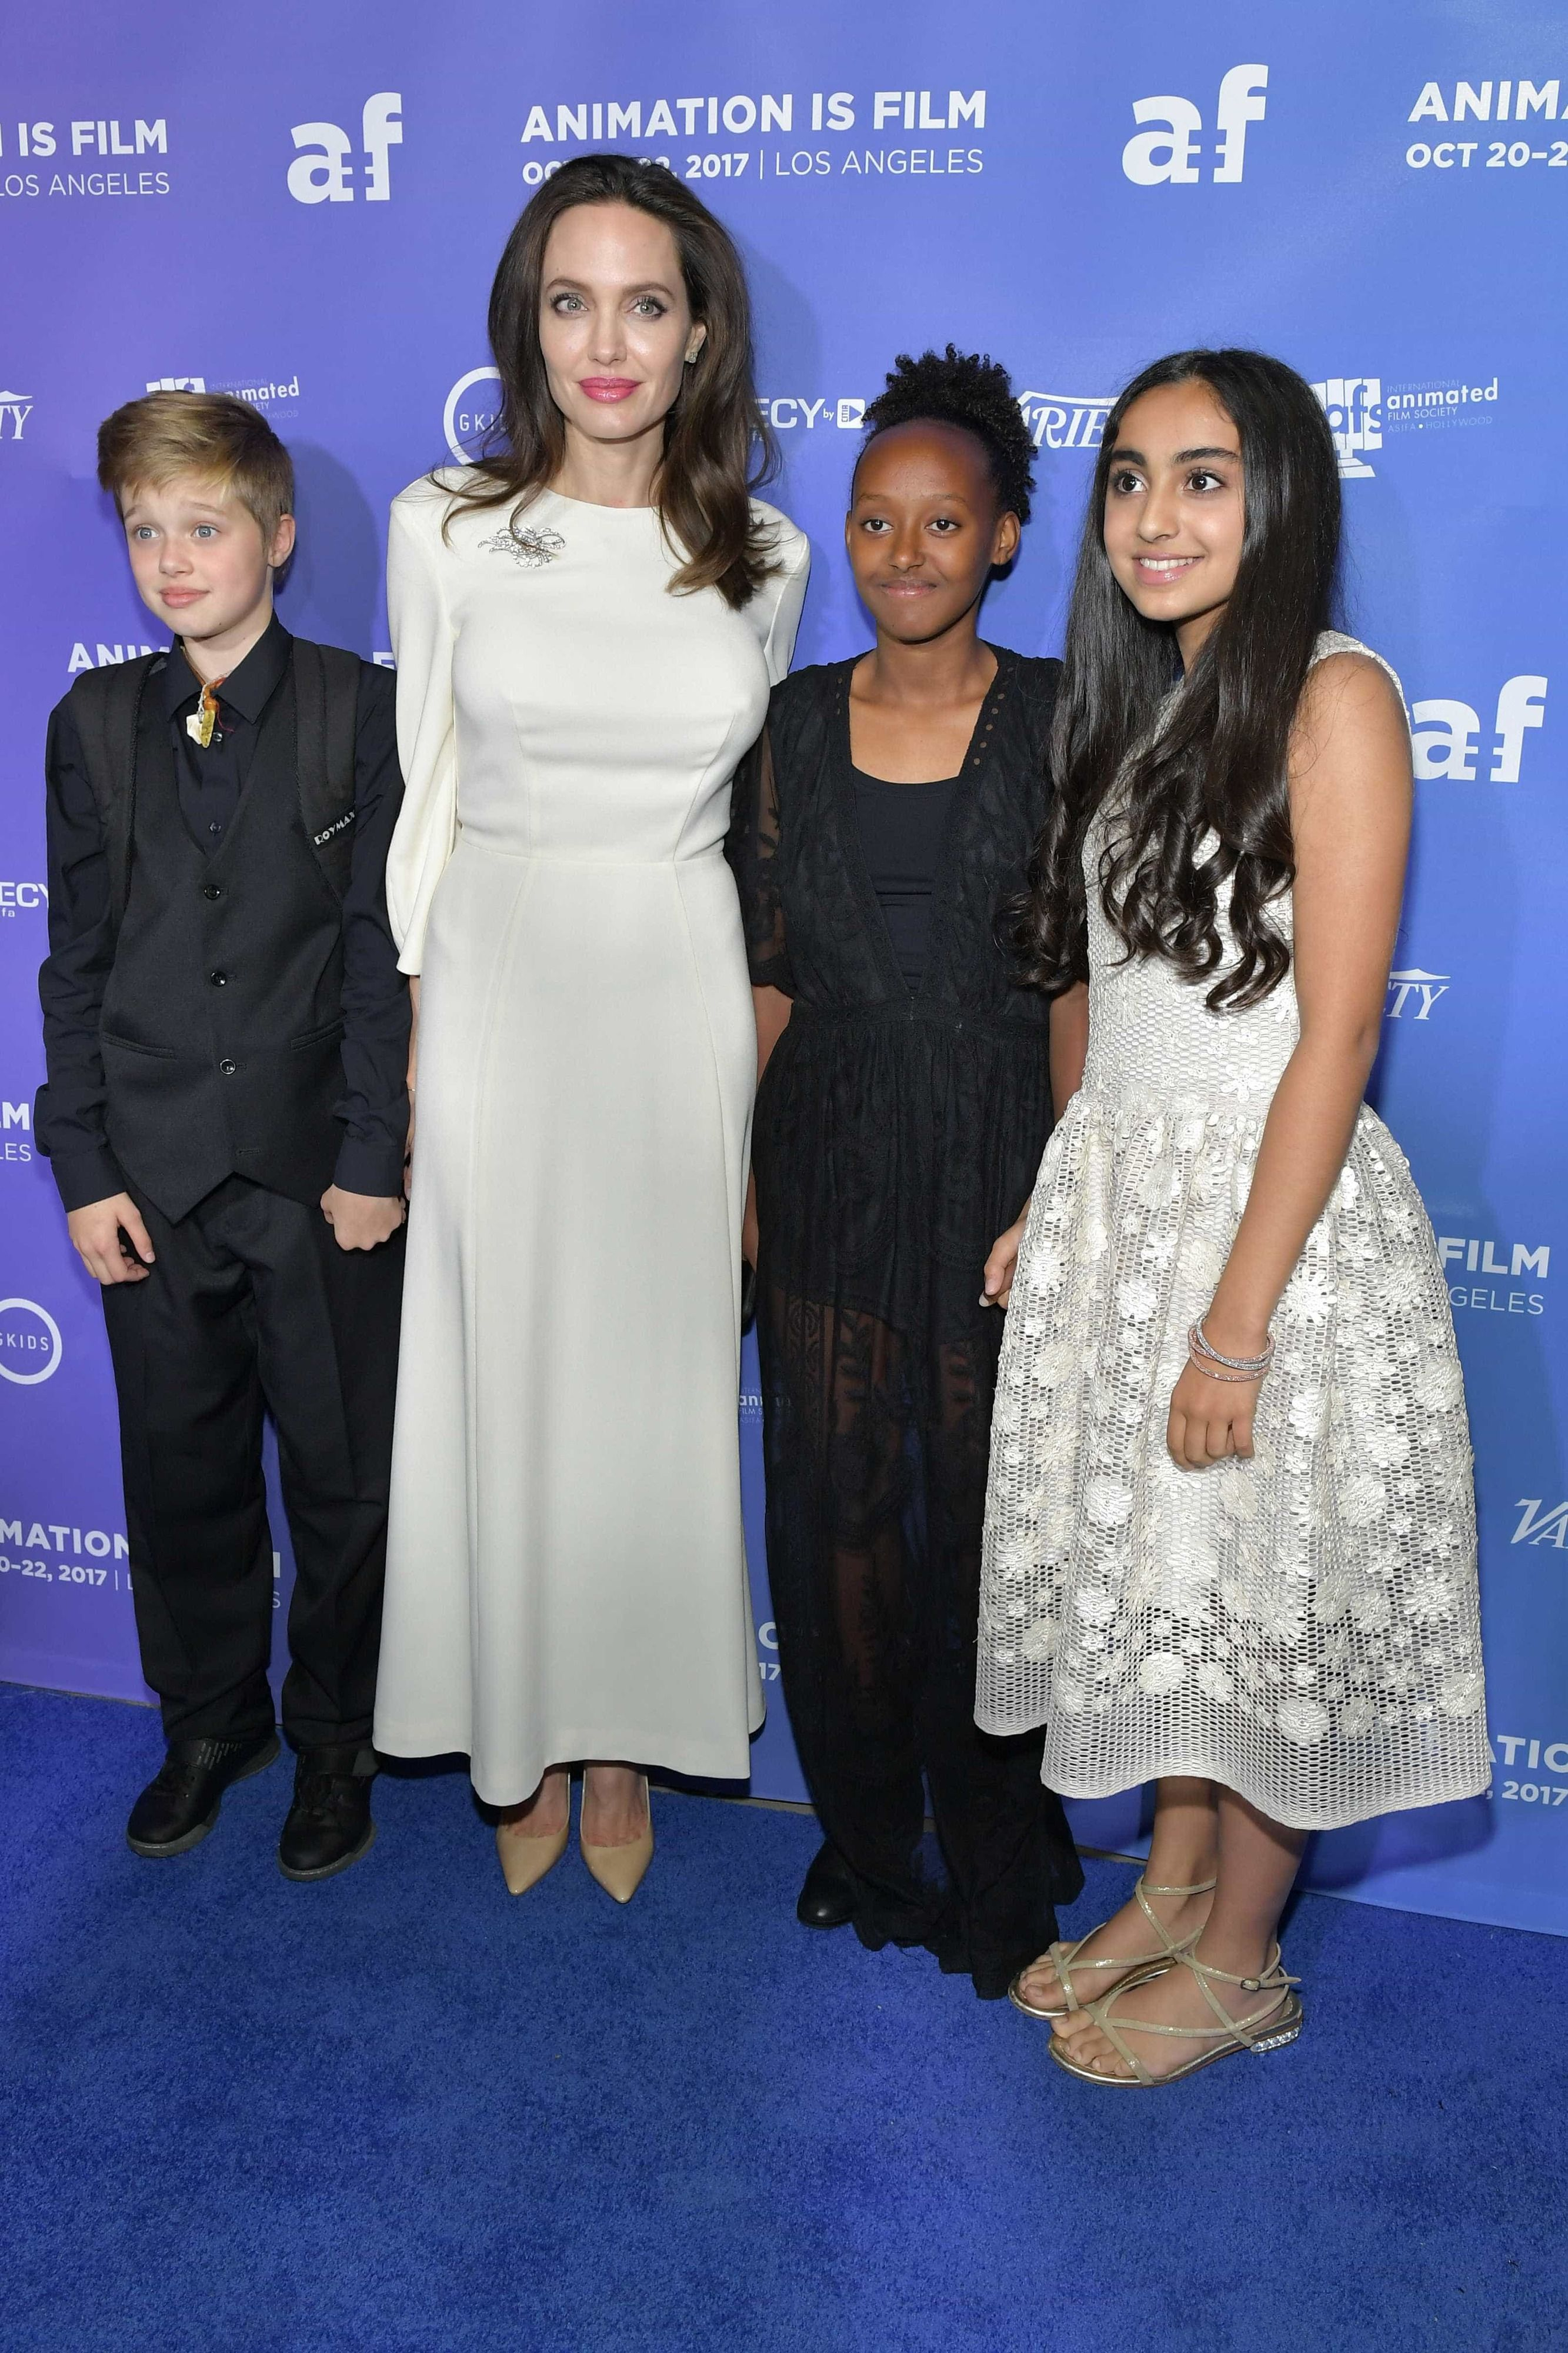 Angelina Jolie and children Shiloh, Saara, and Zahara Marley Jolie-Pitt on October 20, 2017 in Hollywood, California. | Photo: Getty Images